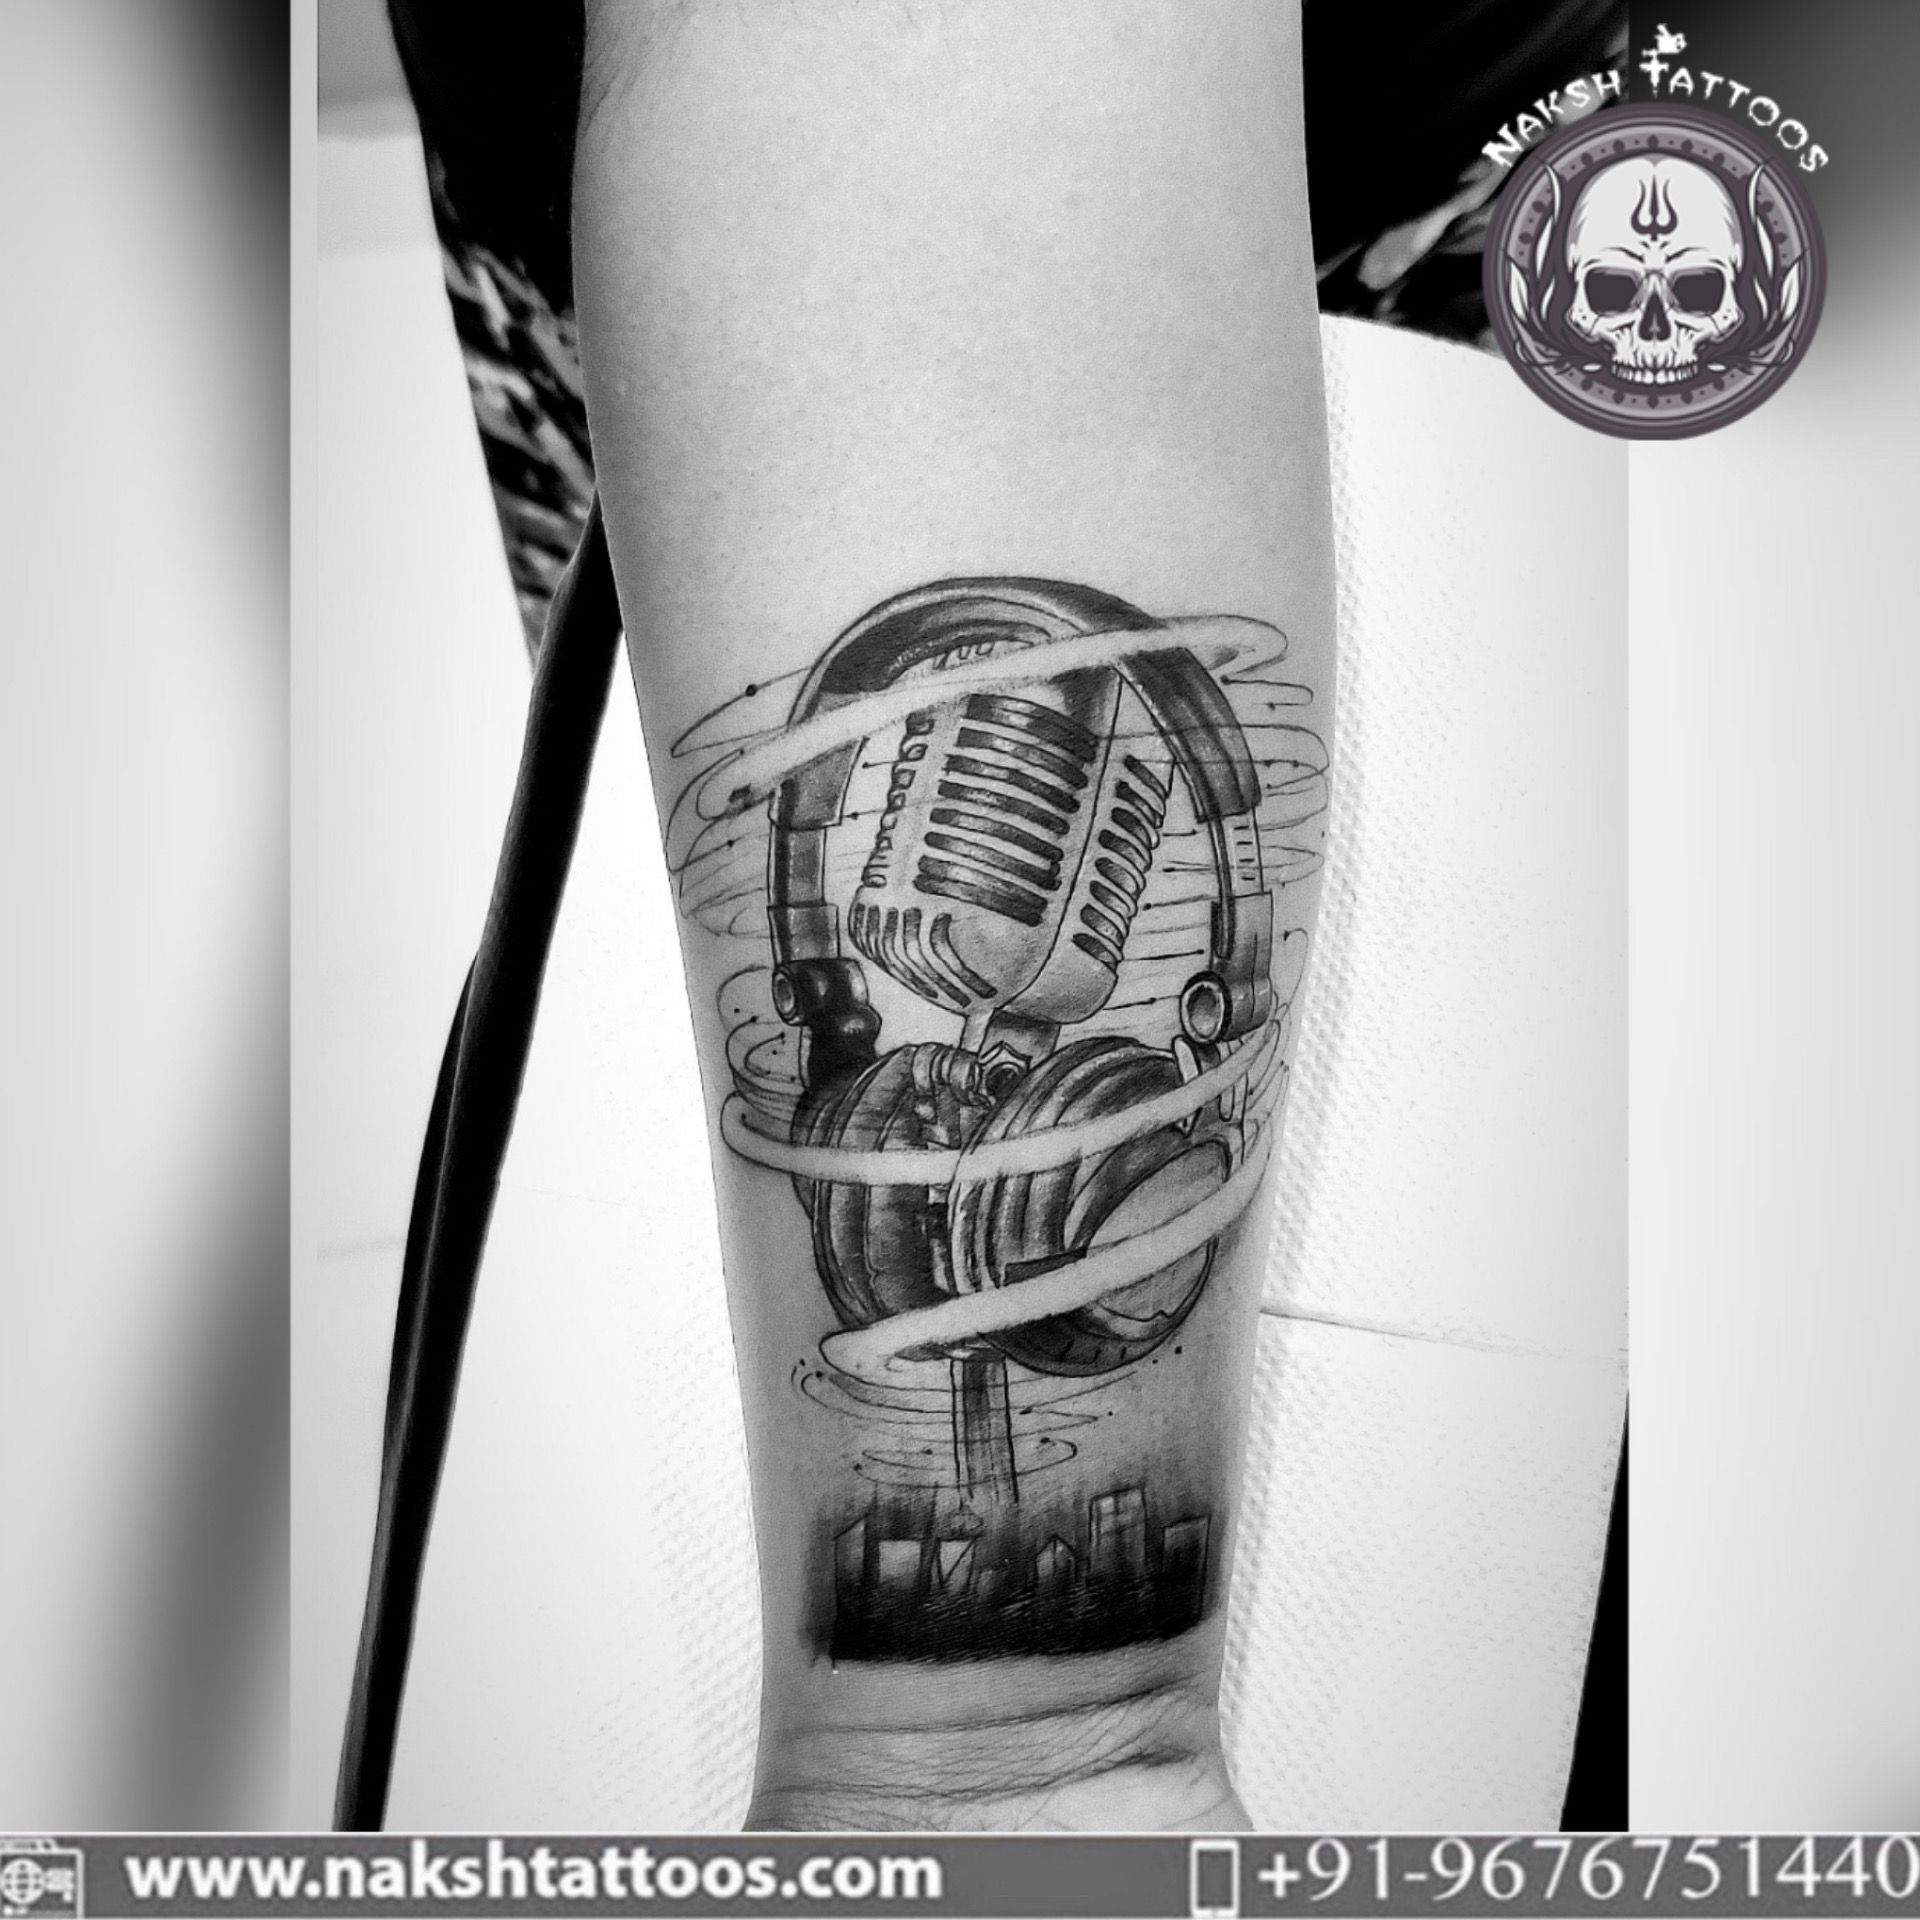 For more such amazing tattoos on your skin, book an appointment on 9676751440. #tattoo #art #abstract #protection #coverup #microphone #mic #music #headphones #asraonagar #madhapur #tattooinhyderabad #powerful #culture #quality #safe #hygiene #tattoostudio #tattooshop #tattoosinhyderabad #tattooshop #tattoosinasraonagar #tattoosinhitechcity #sketch #custom #tattoos #happycustomer #hyderabad #india